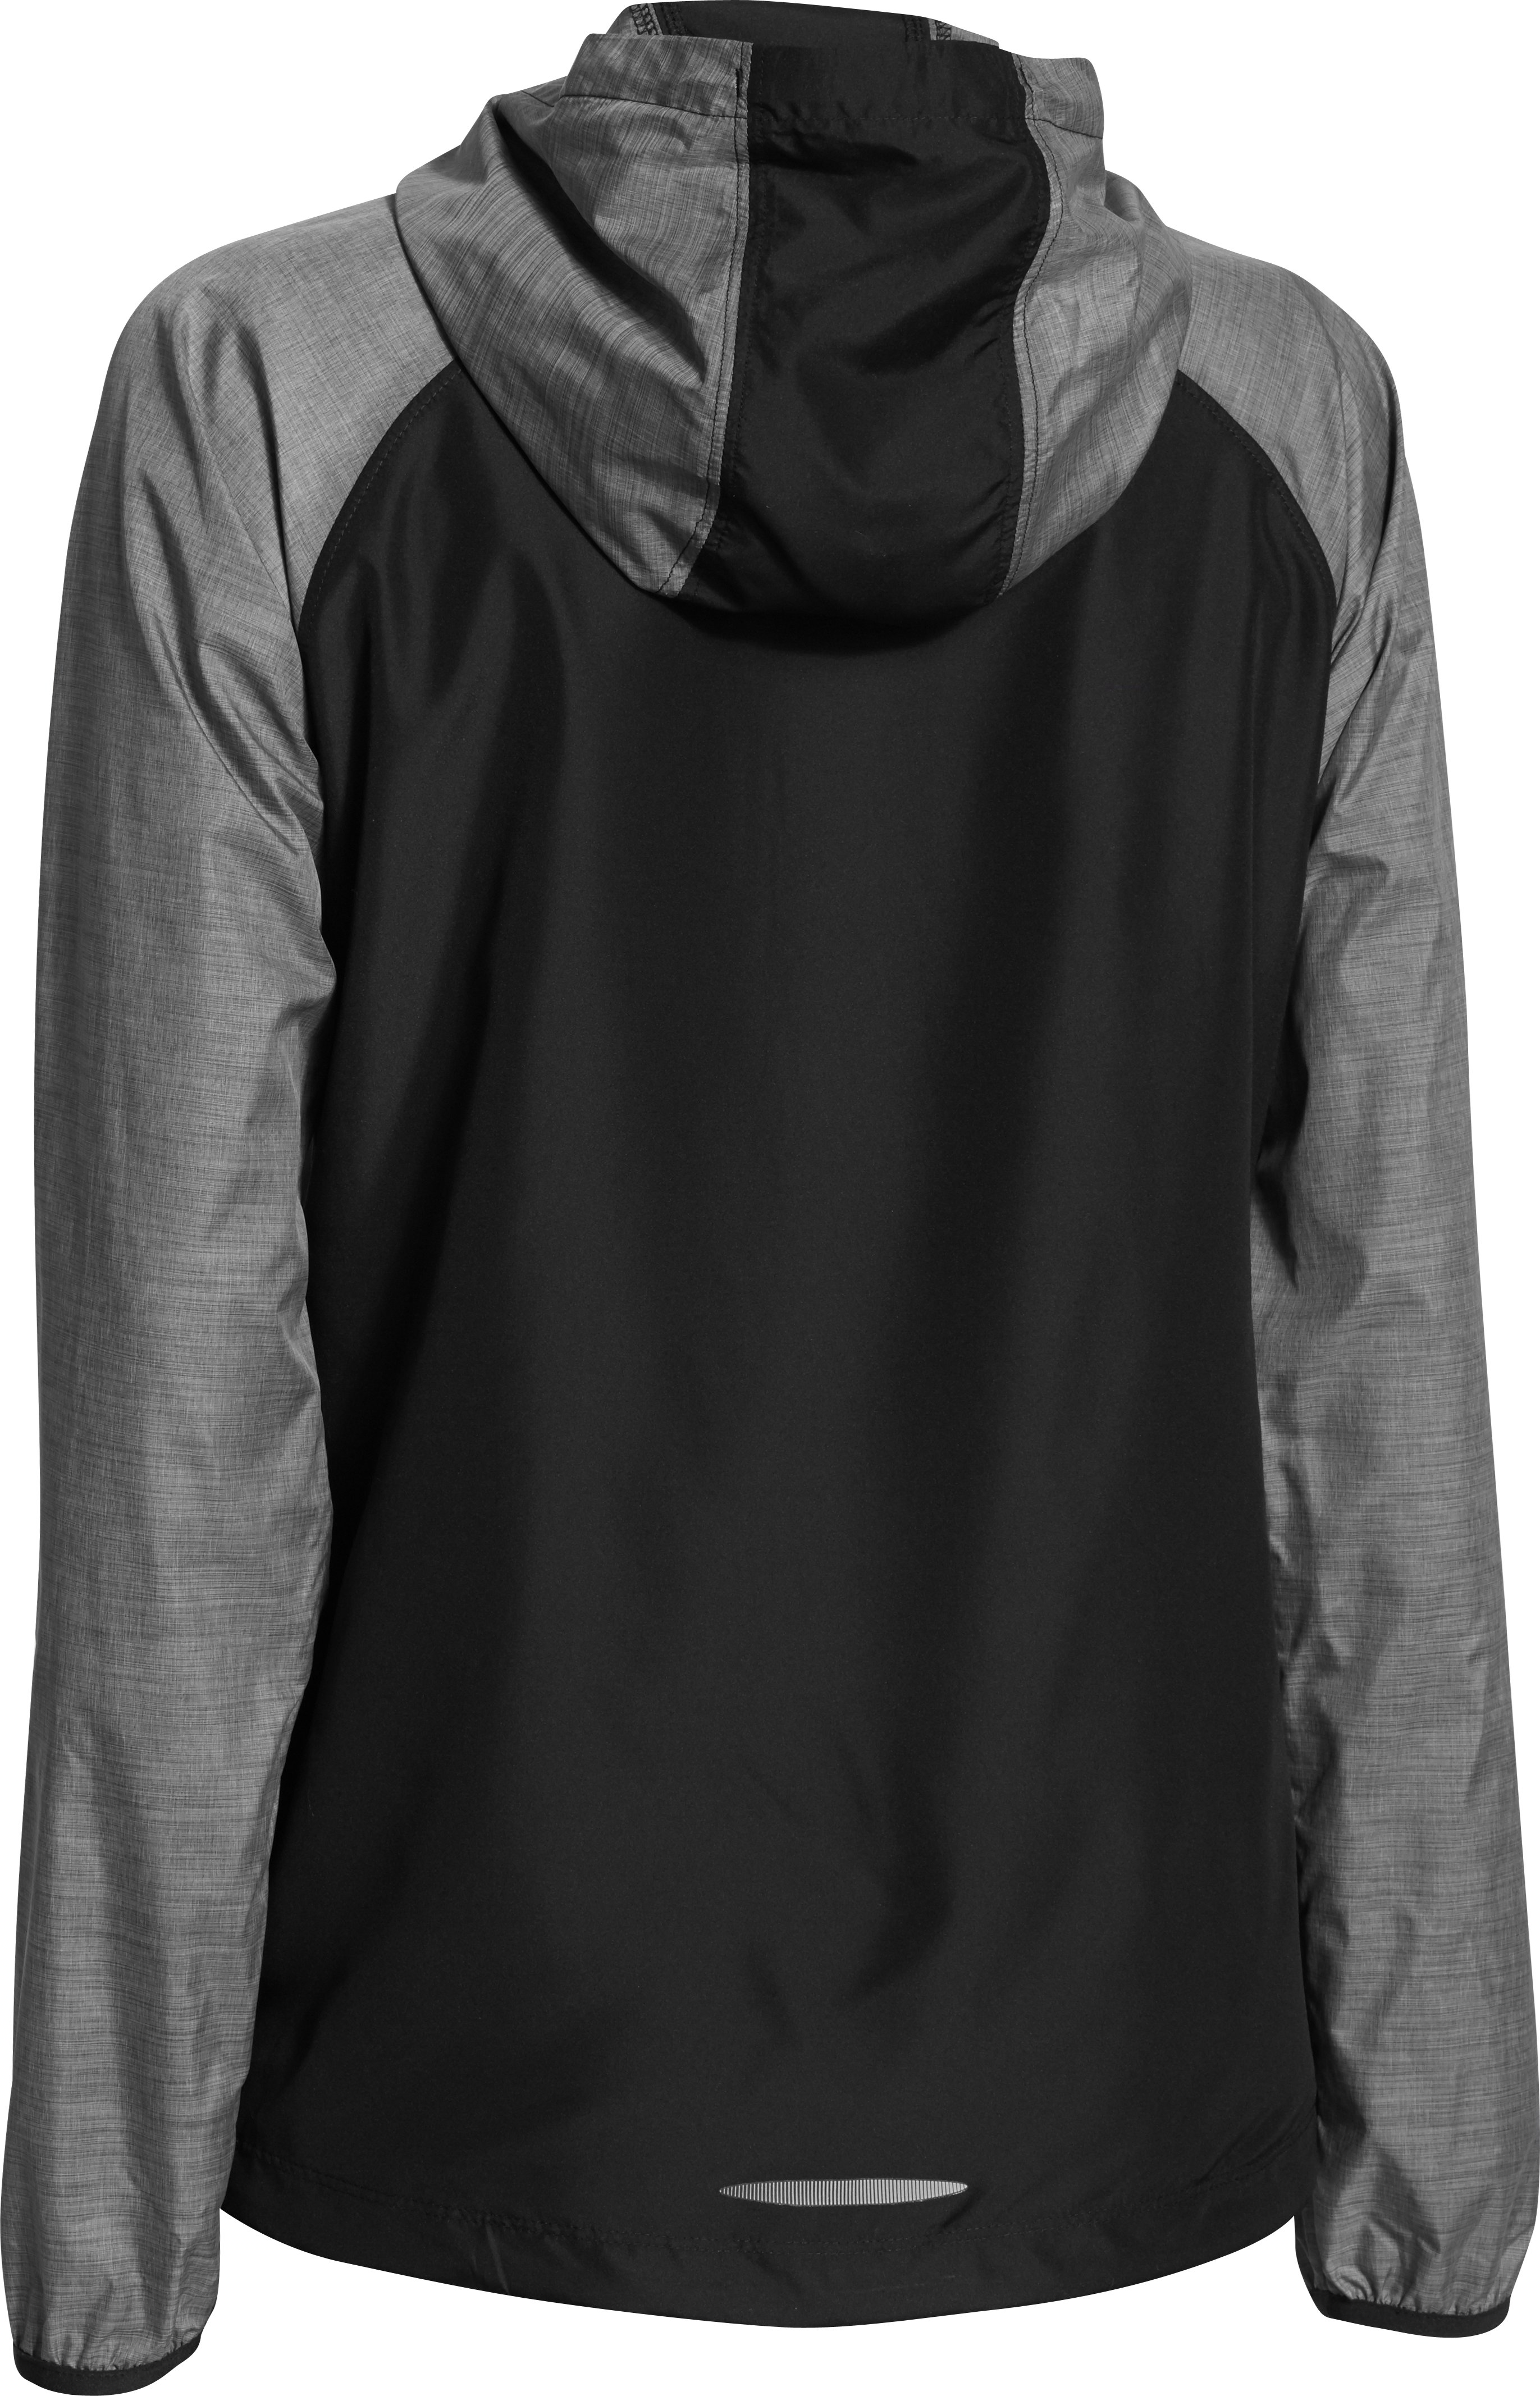 Women's UA Qualifier Woven Jacket, Black